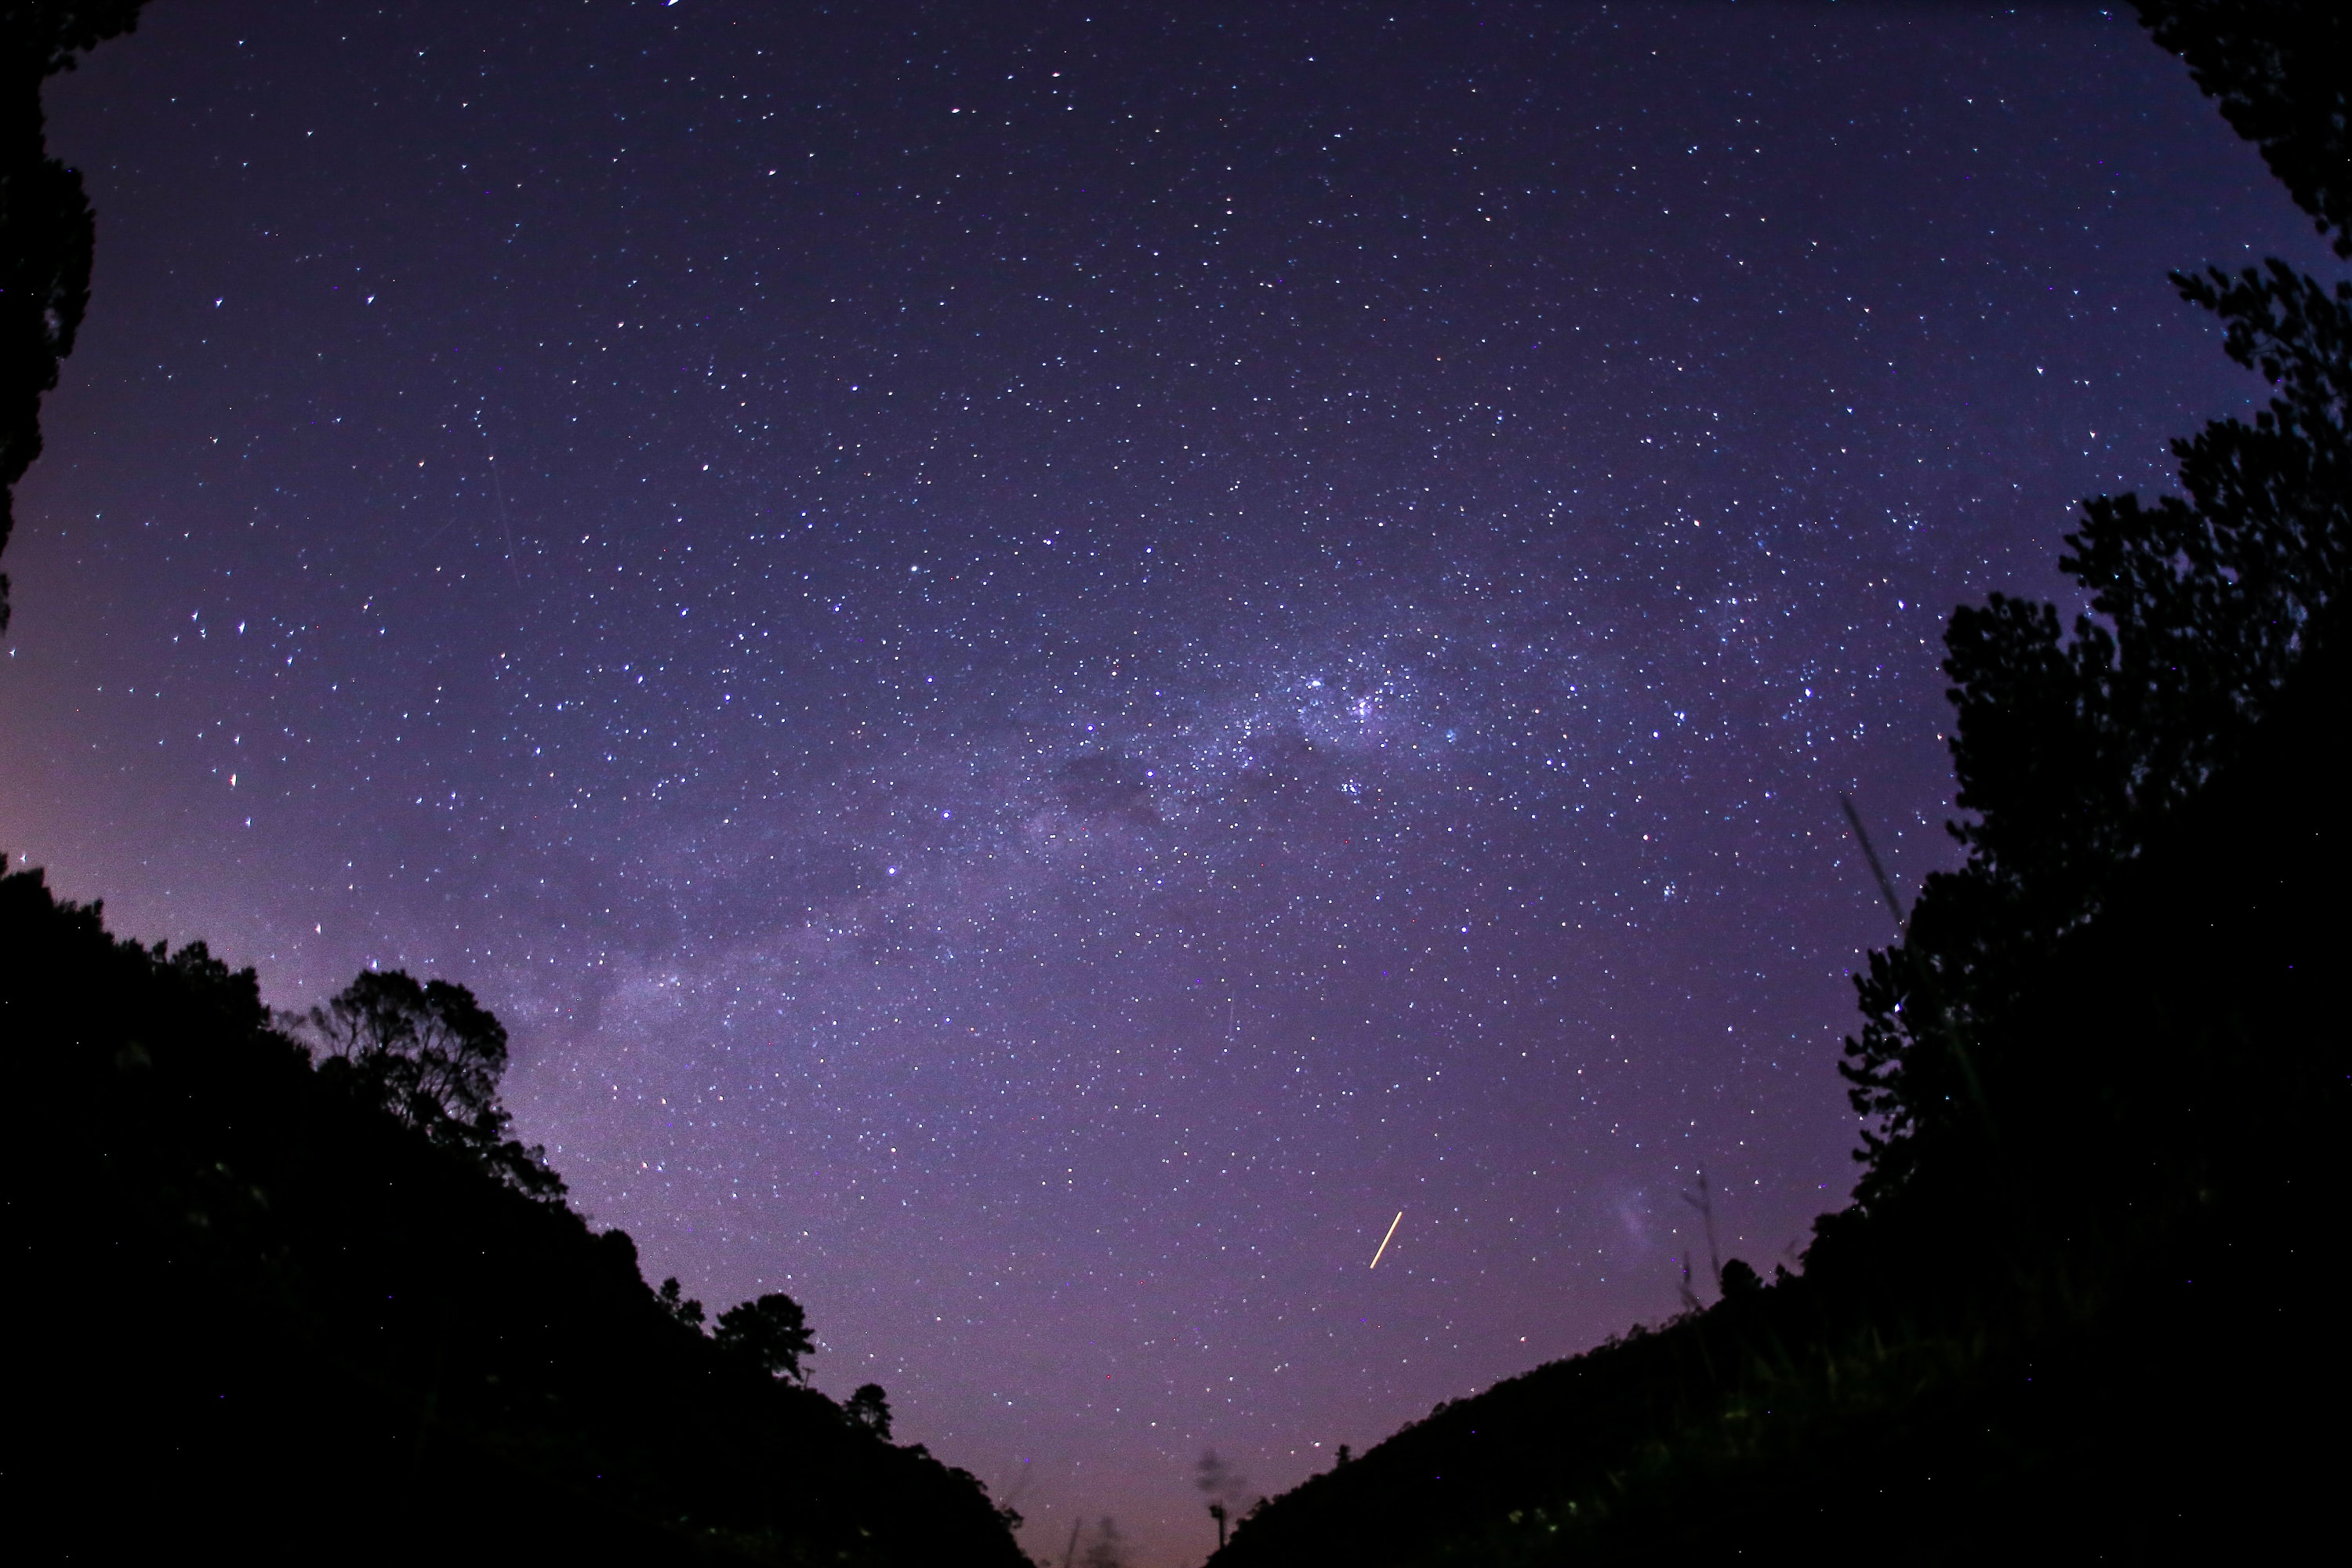 milky way above forest silhouette during nighttime